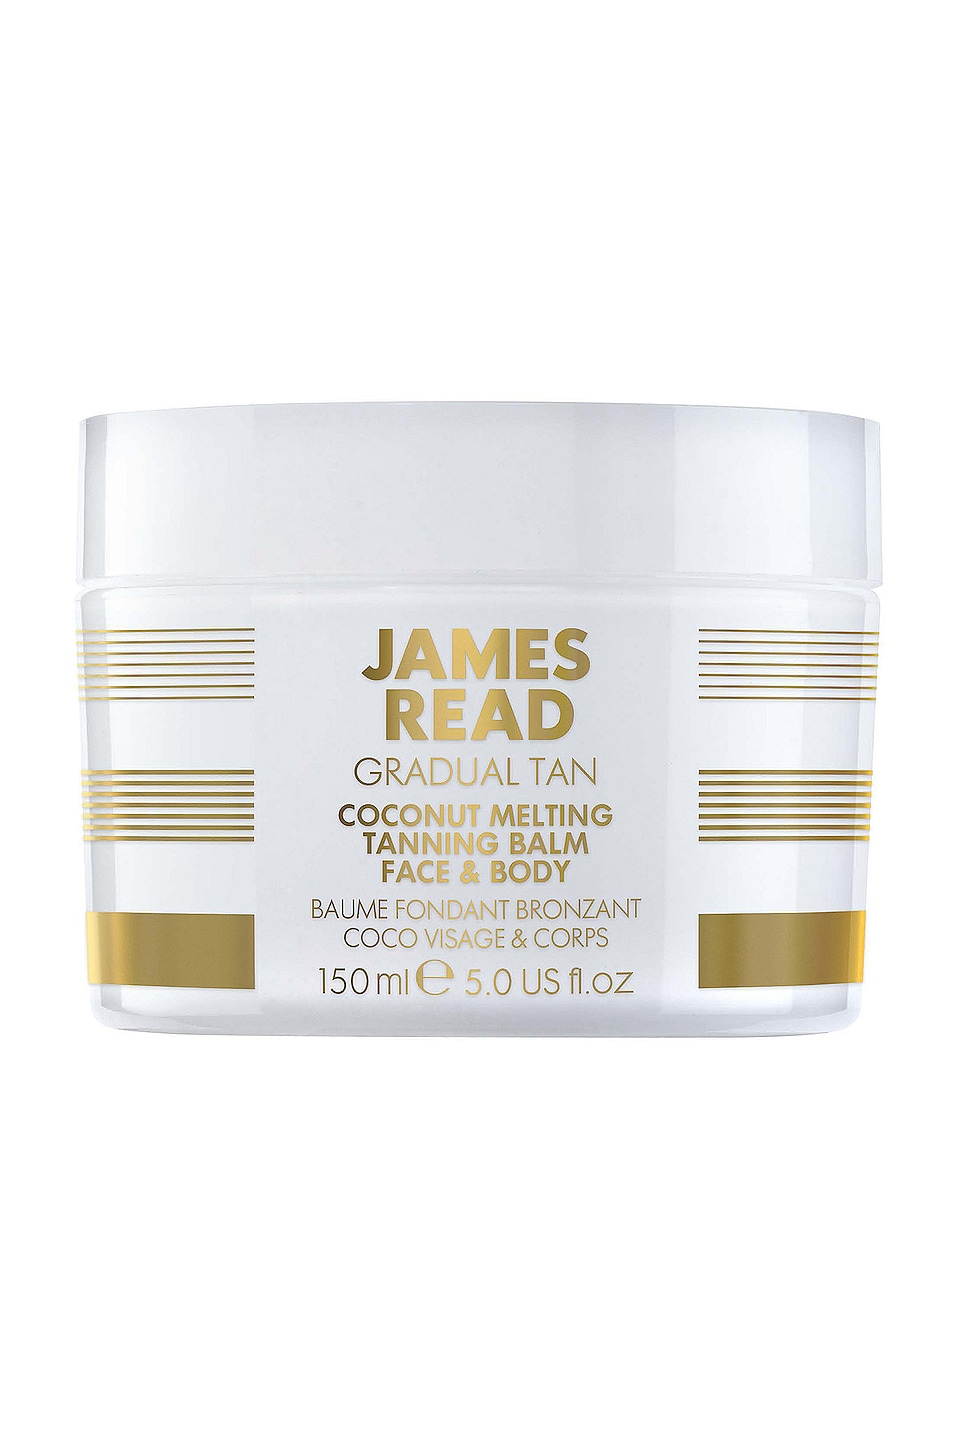 JAMES READ TAN Coconut Melting Tanning Balm Face & Body in Beauty: Na